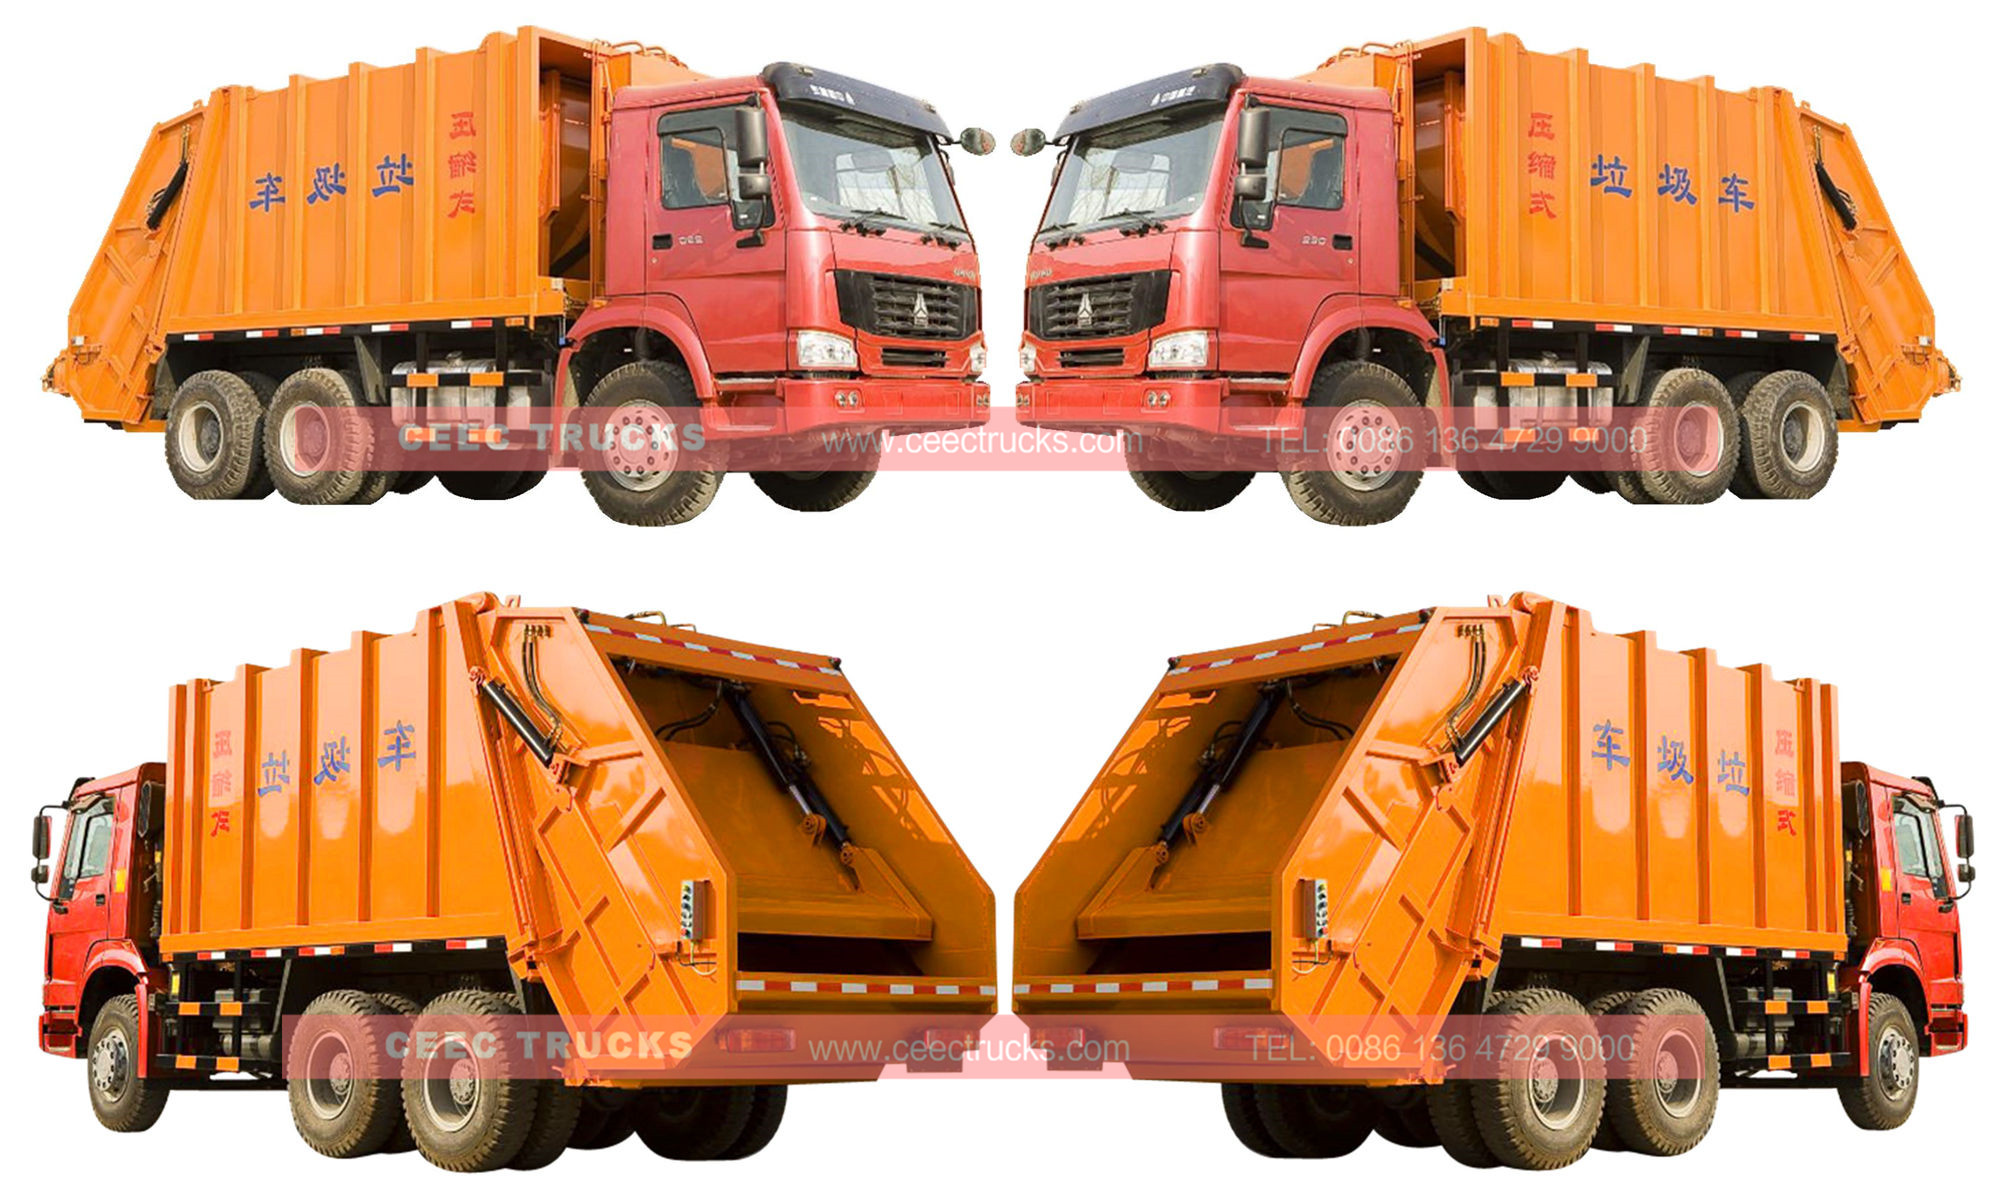 wholeview for SINOTRUK 20cbm compactor truck